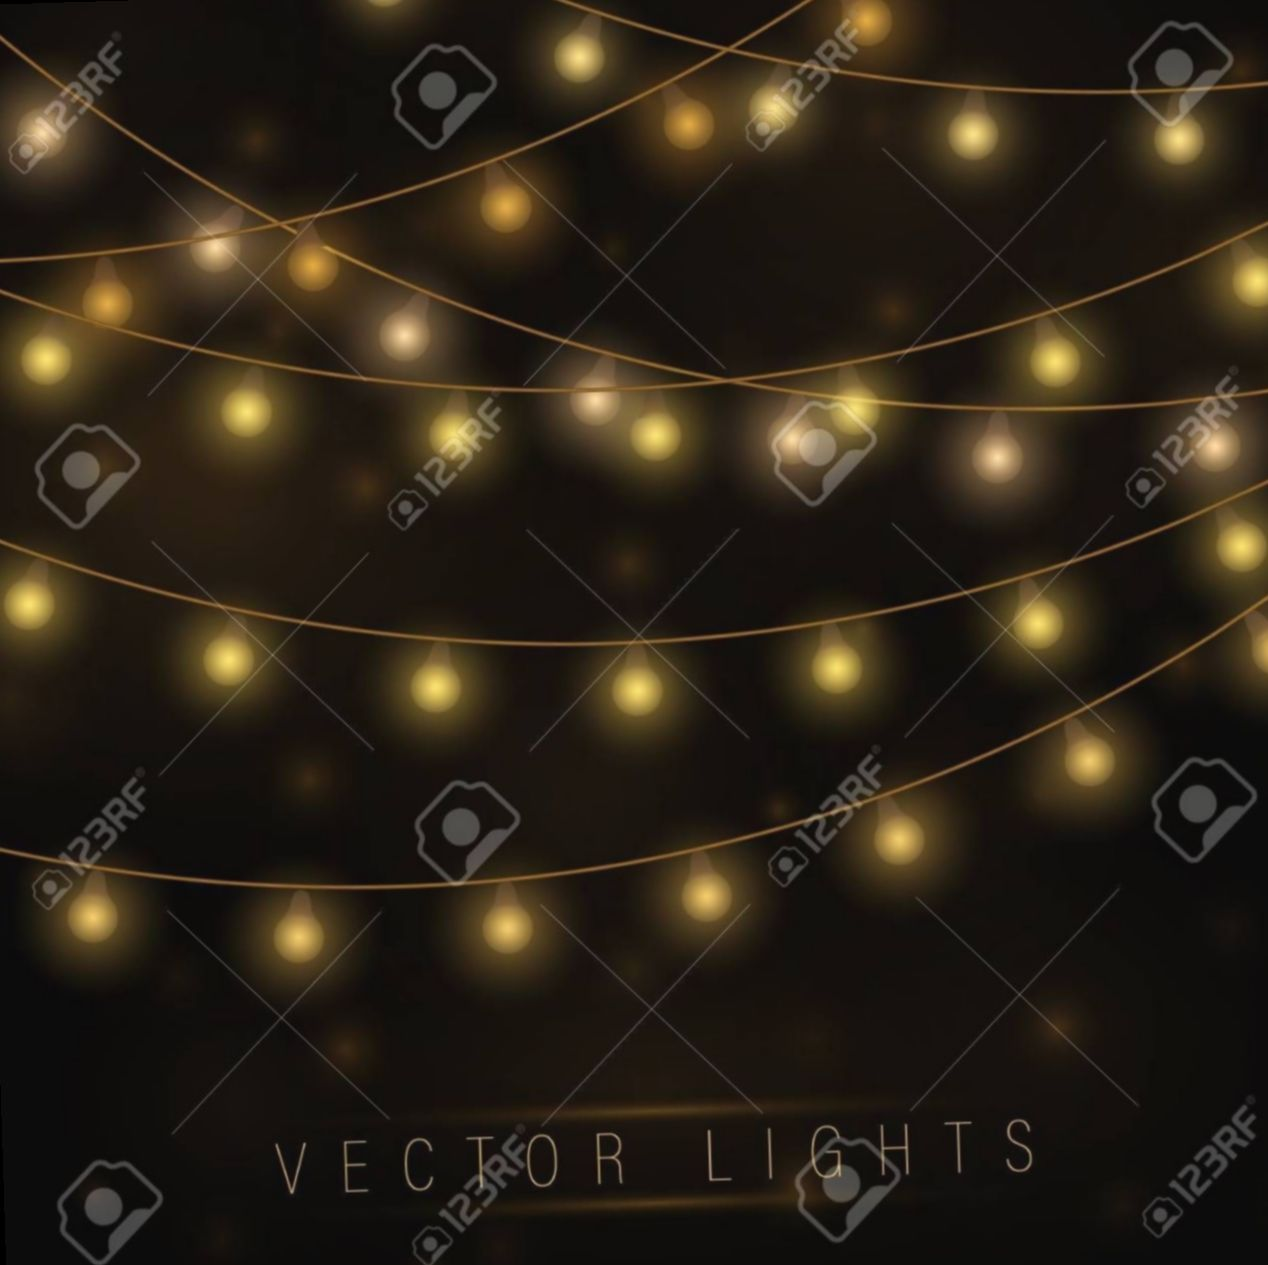 16 Christmas Lights Drawing Realistic In 2020 Christmas Lights Drawing Christmas Lights Yellow Christmas Lights